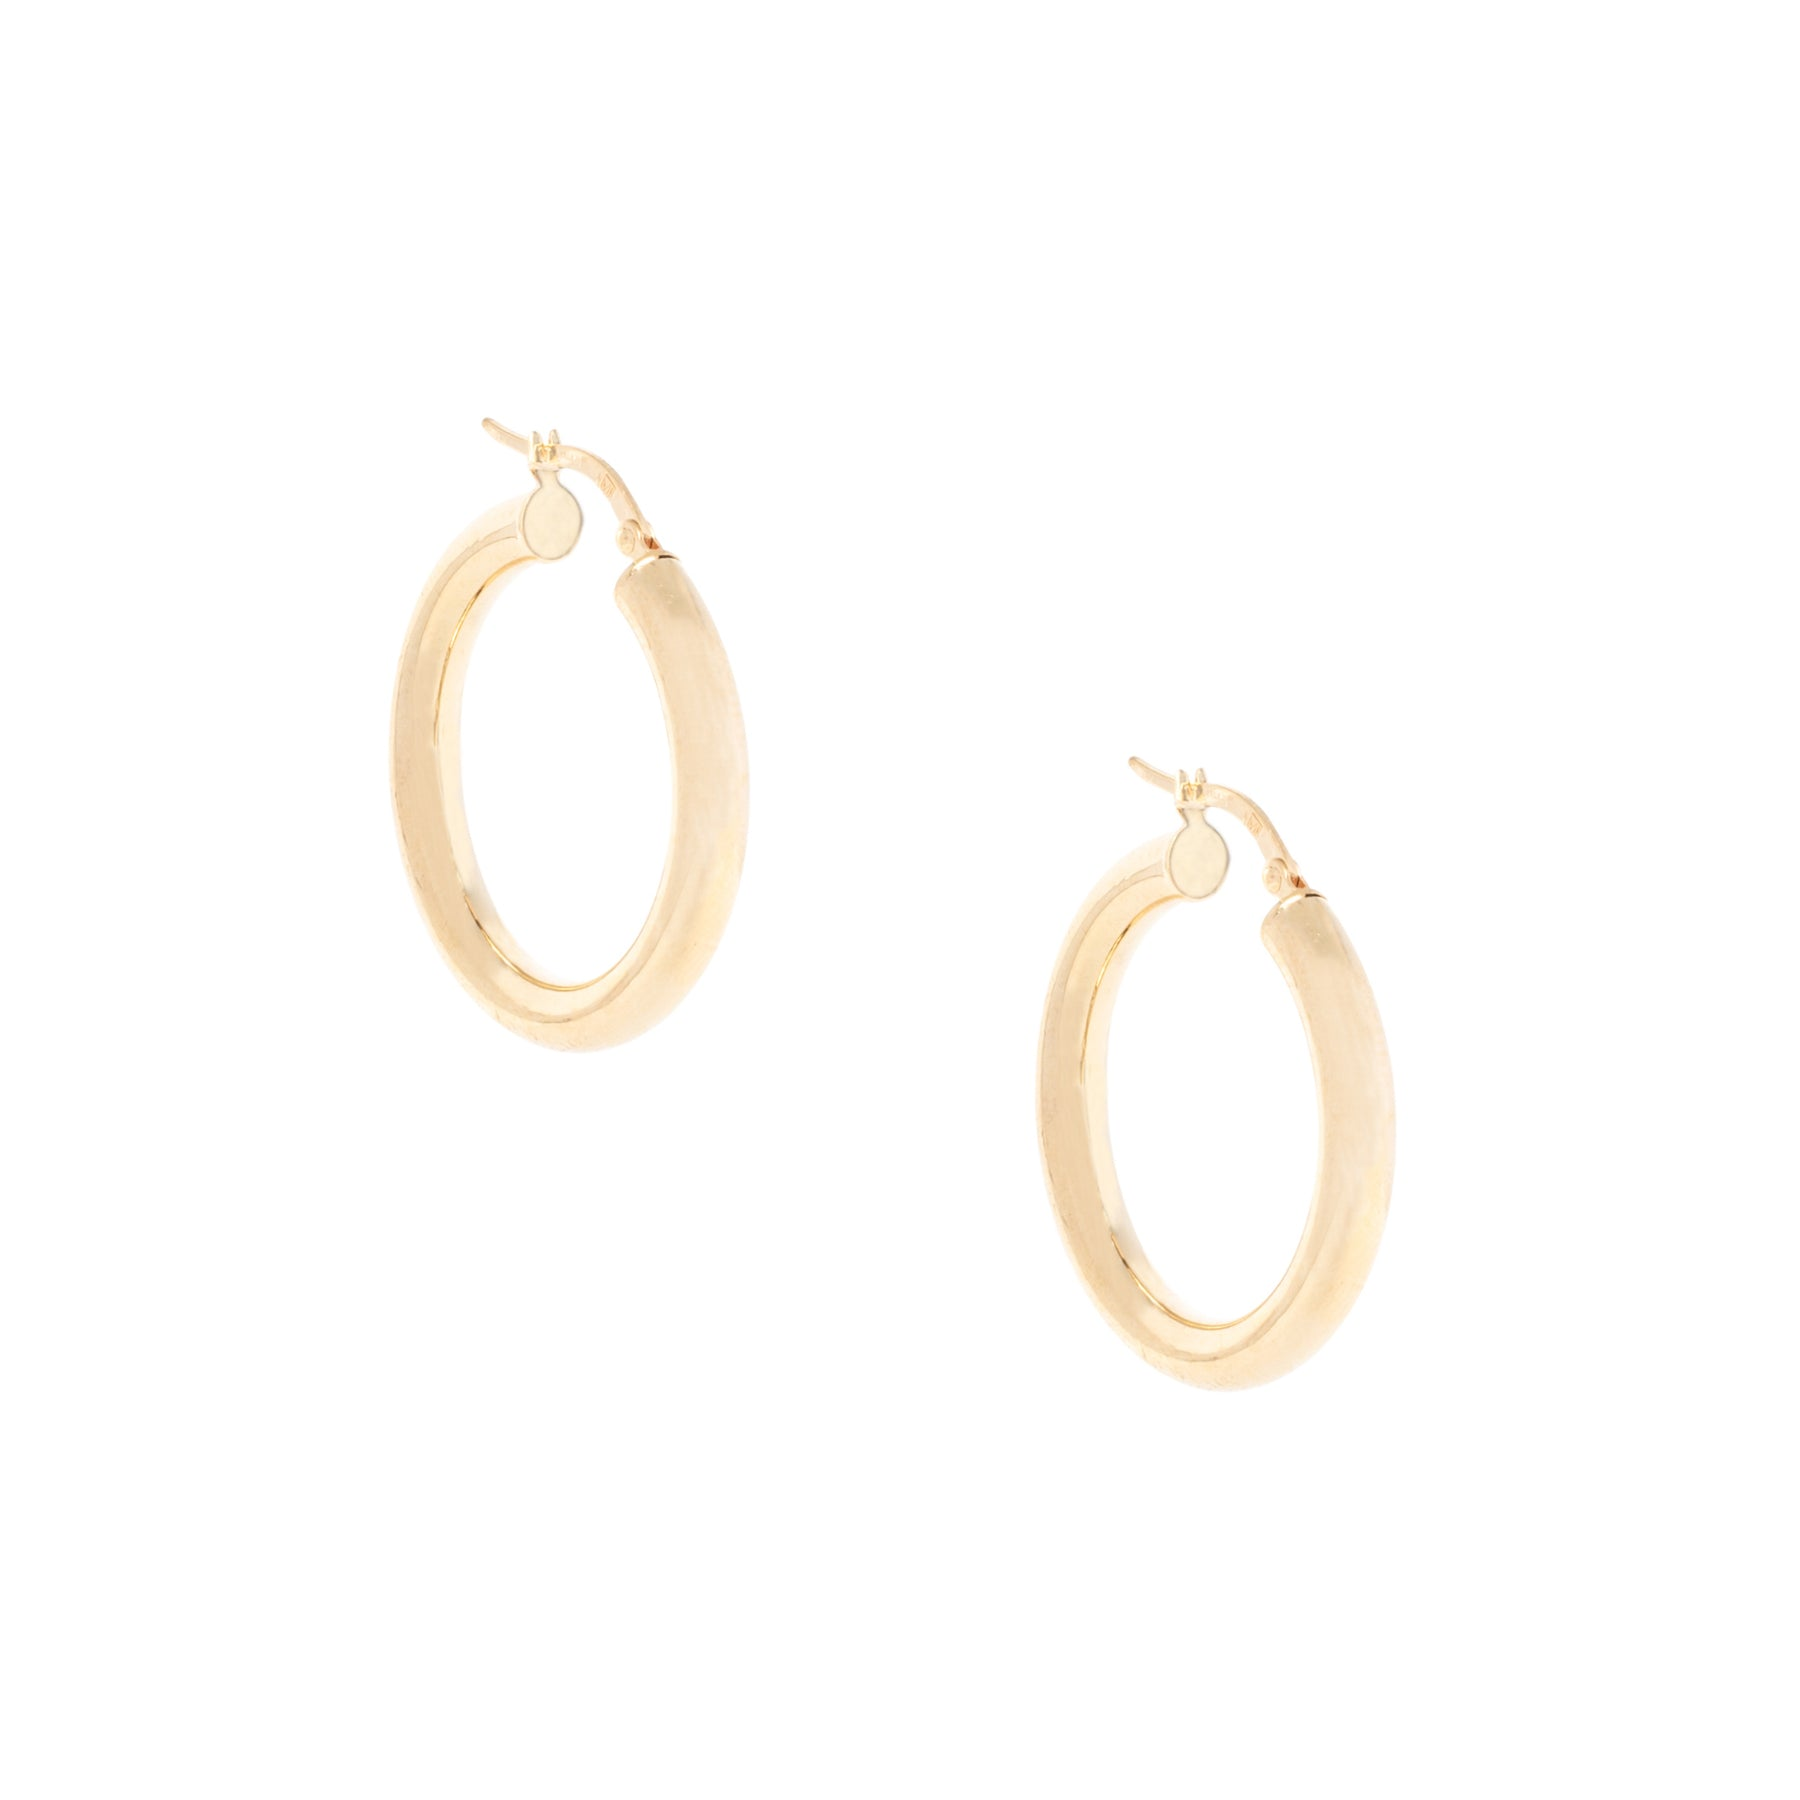 1.25 4MM Thick Gold Hoops